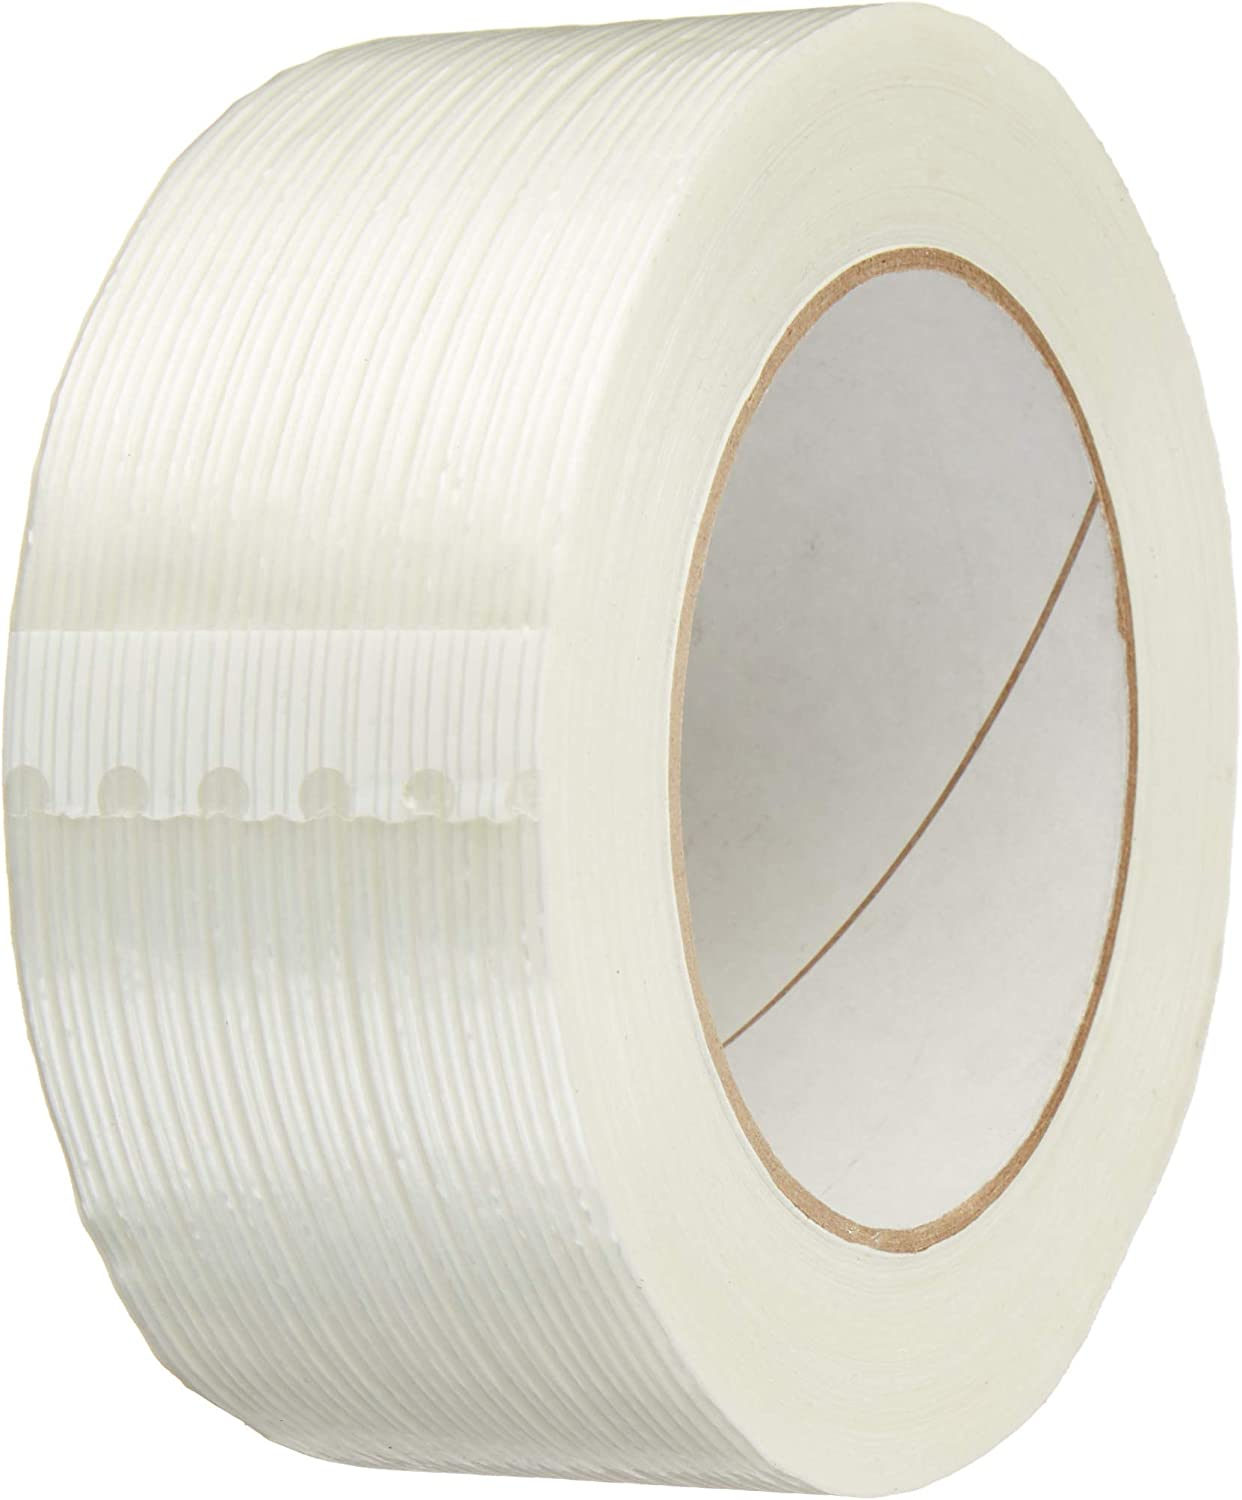 12 Roll 1//2 x 54.6 yds Bi-Directional Fiberglass Reinforced Filament Tape Strapping Tape for Heavy Duty Packing Palletizing 12mm x 50m Wrapping Steel Bundling